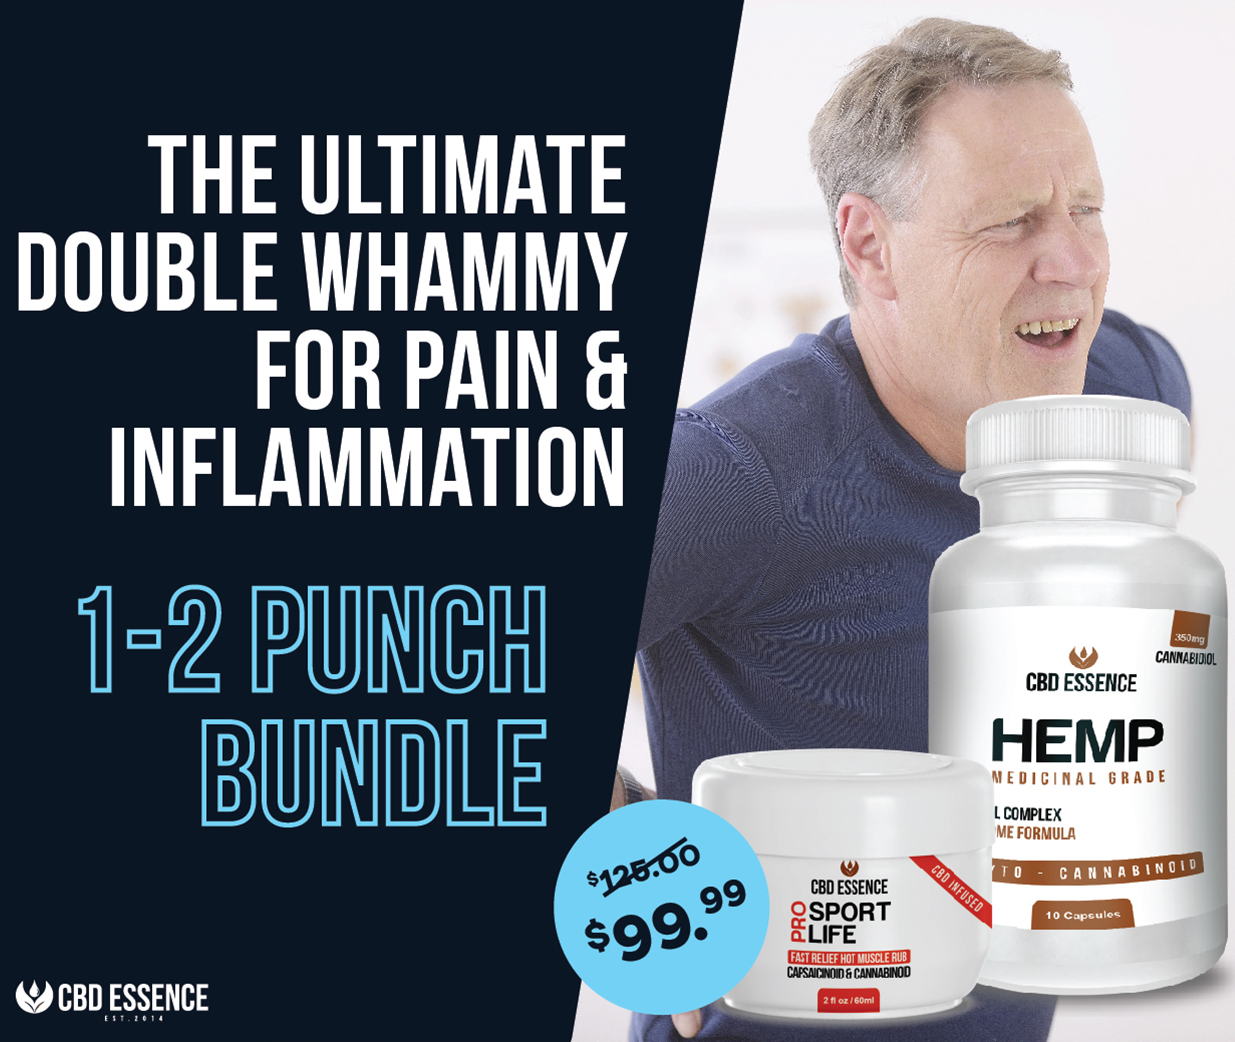 CBD Essence Pain & Inflammation 1-2 Punch Bundle Special